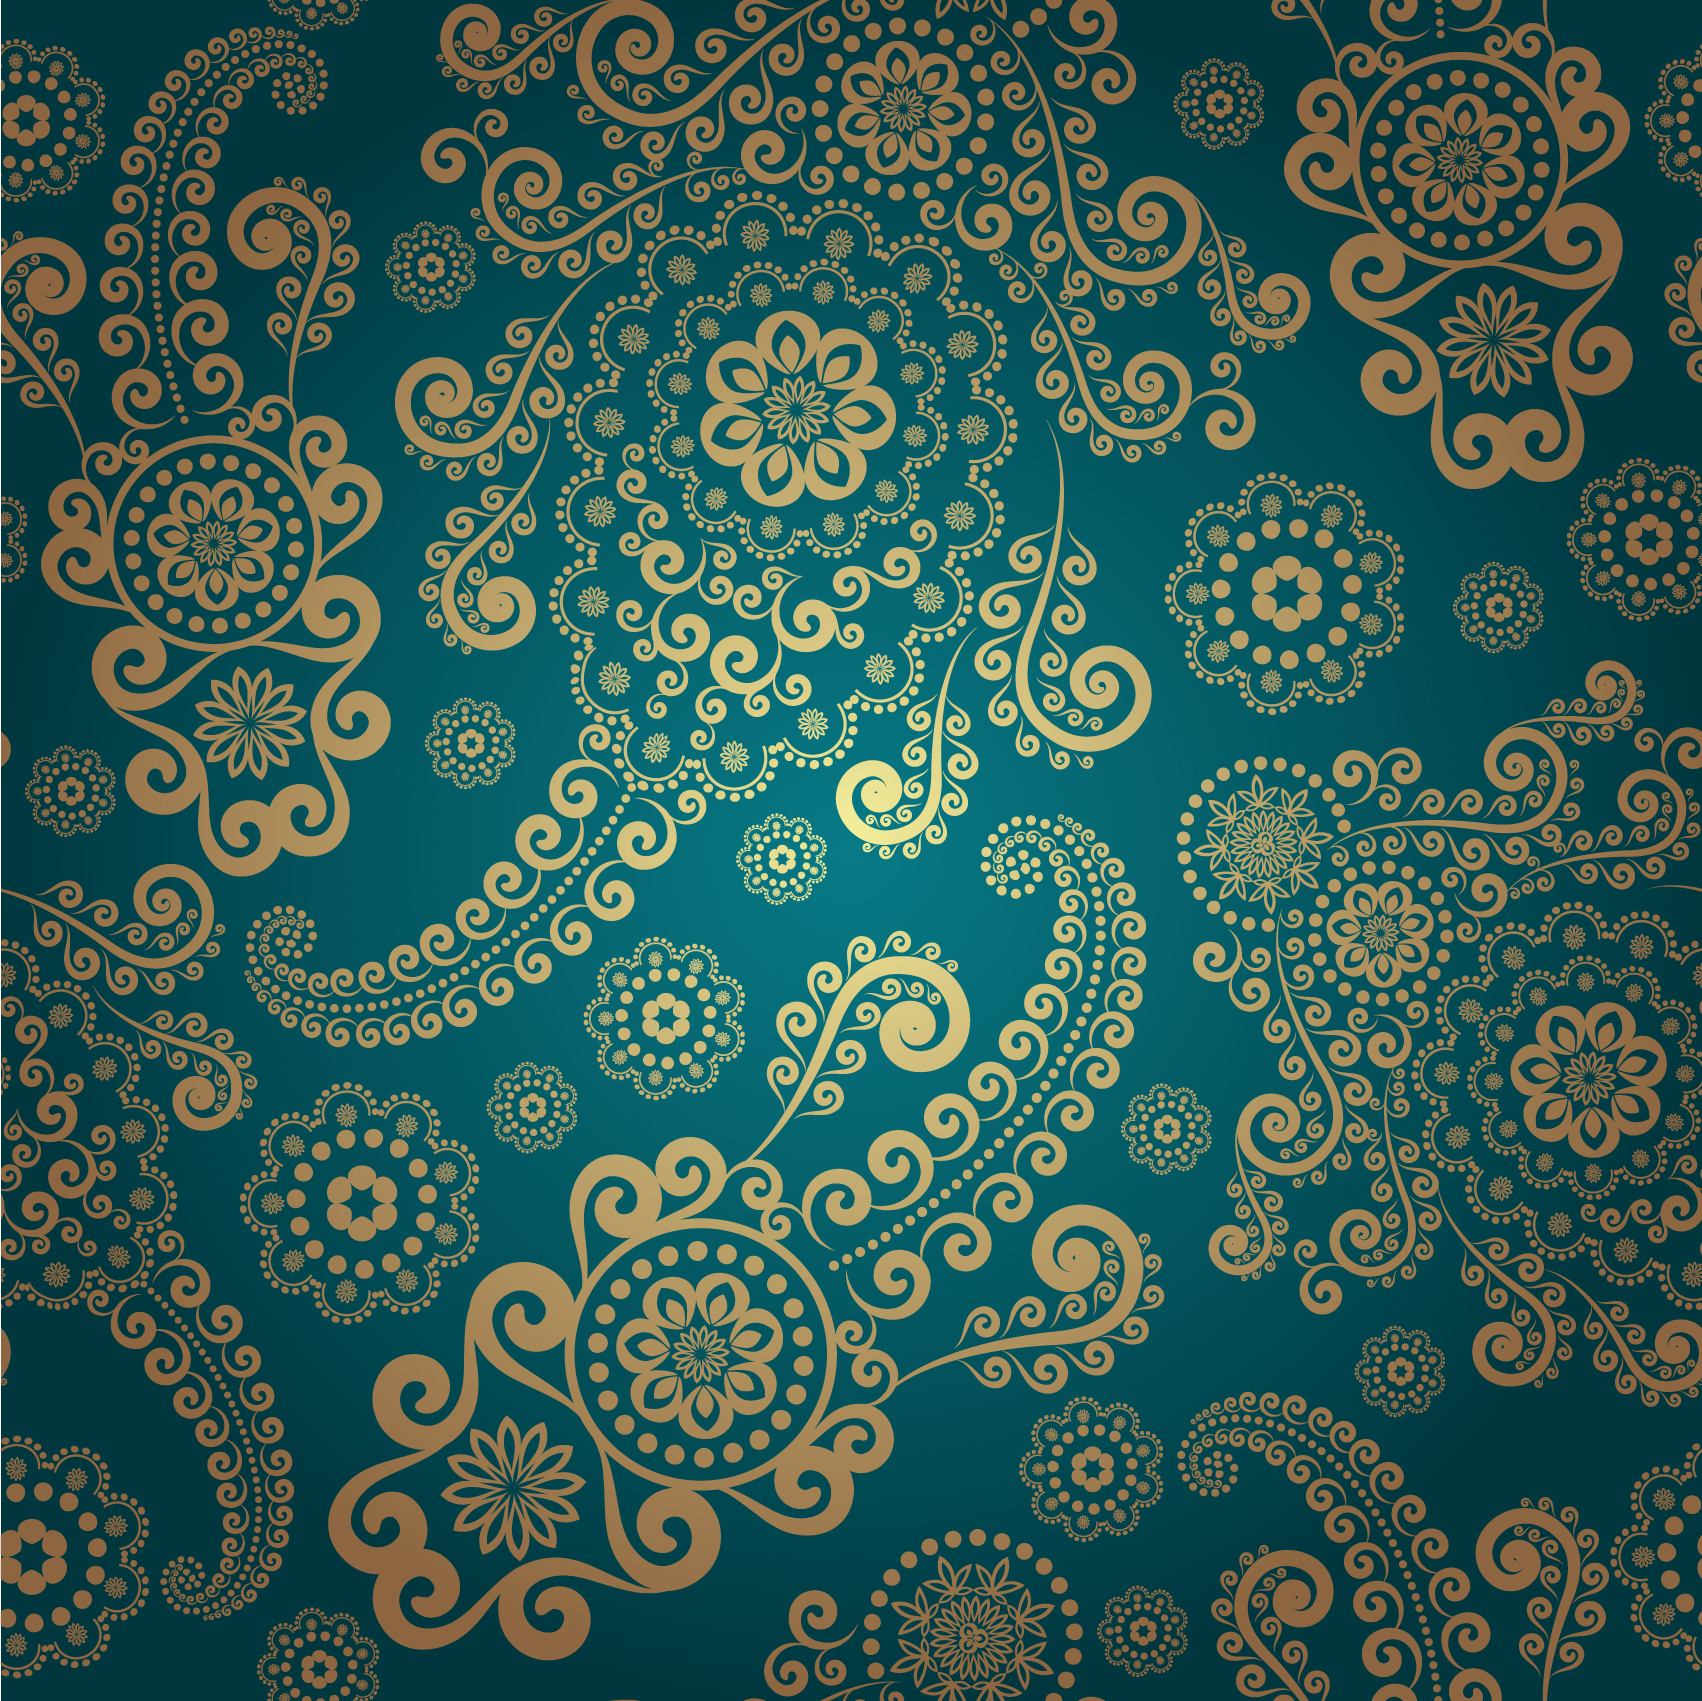 11 Free Vector Vintage Pattern Images